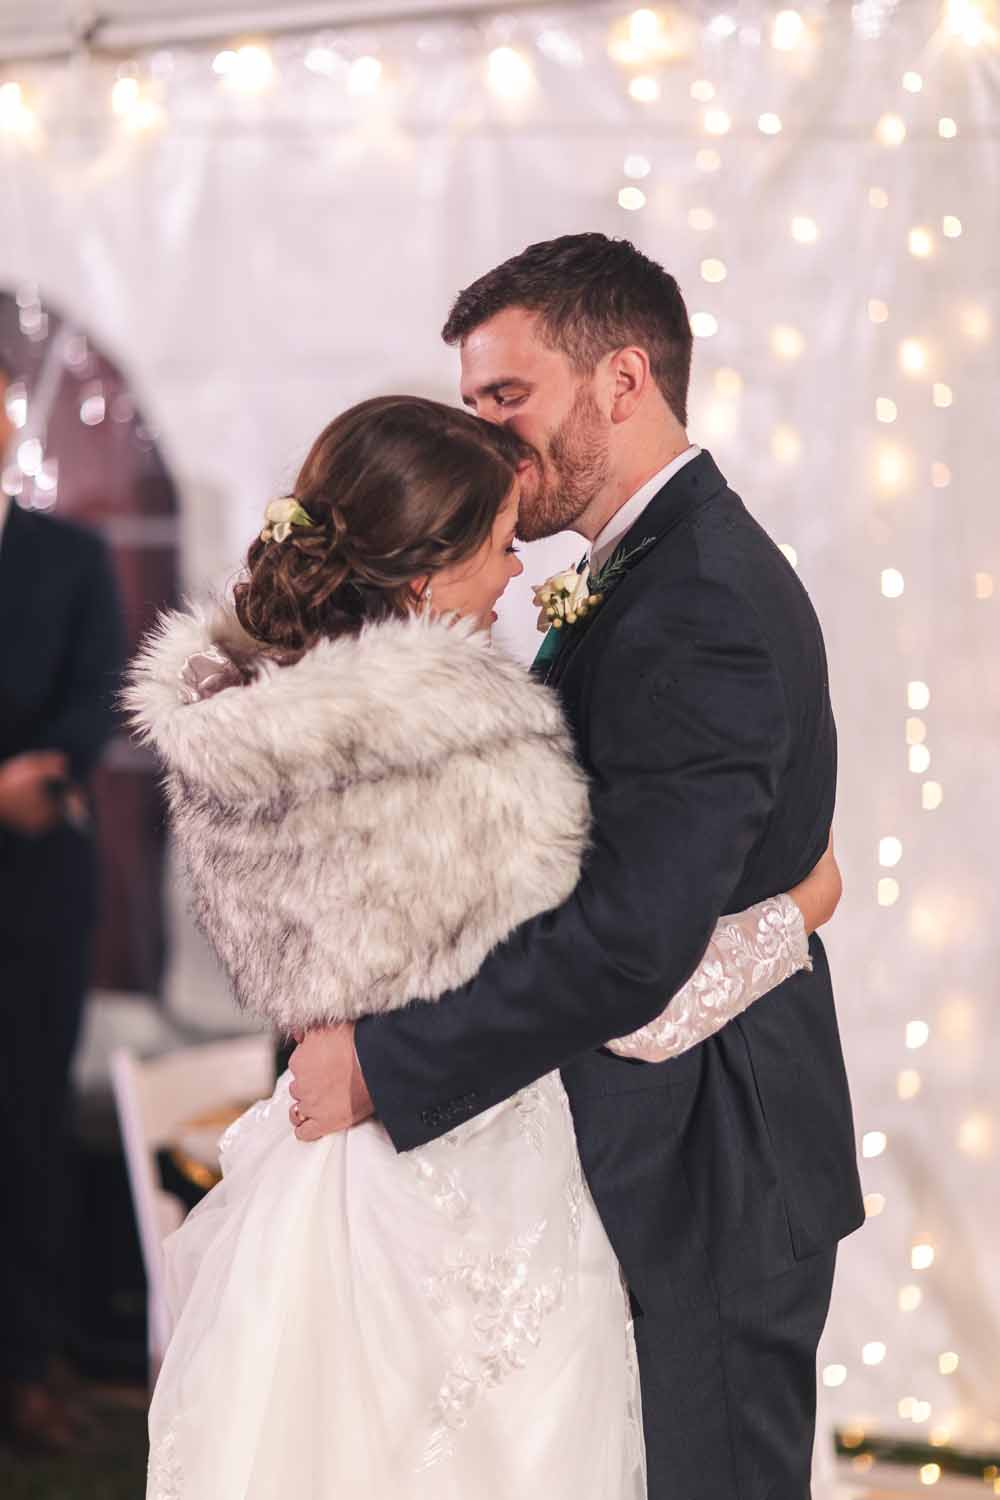 Groom kissing bride on forehead during first dance